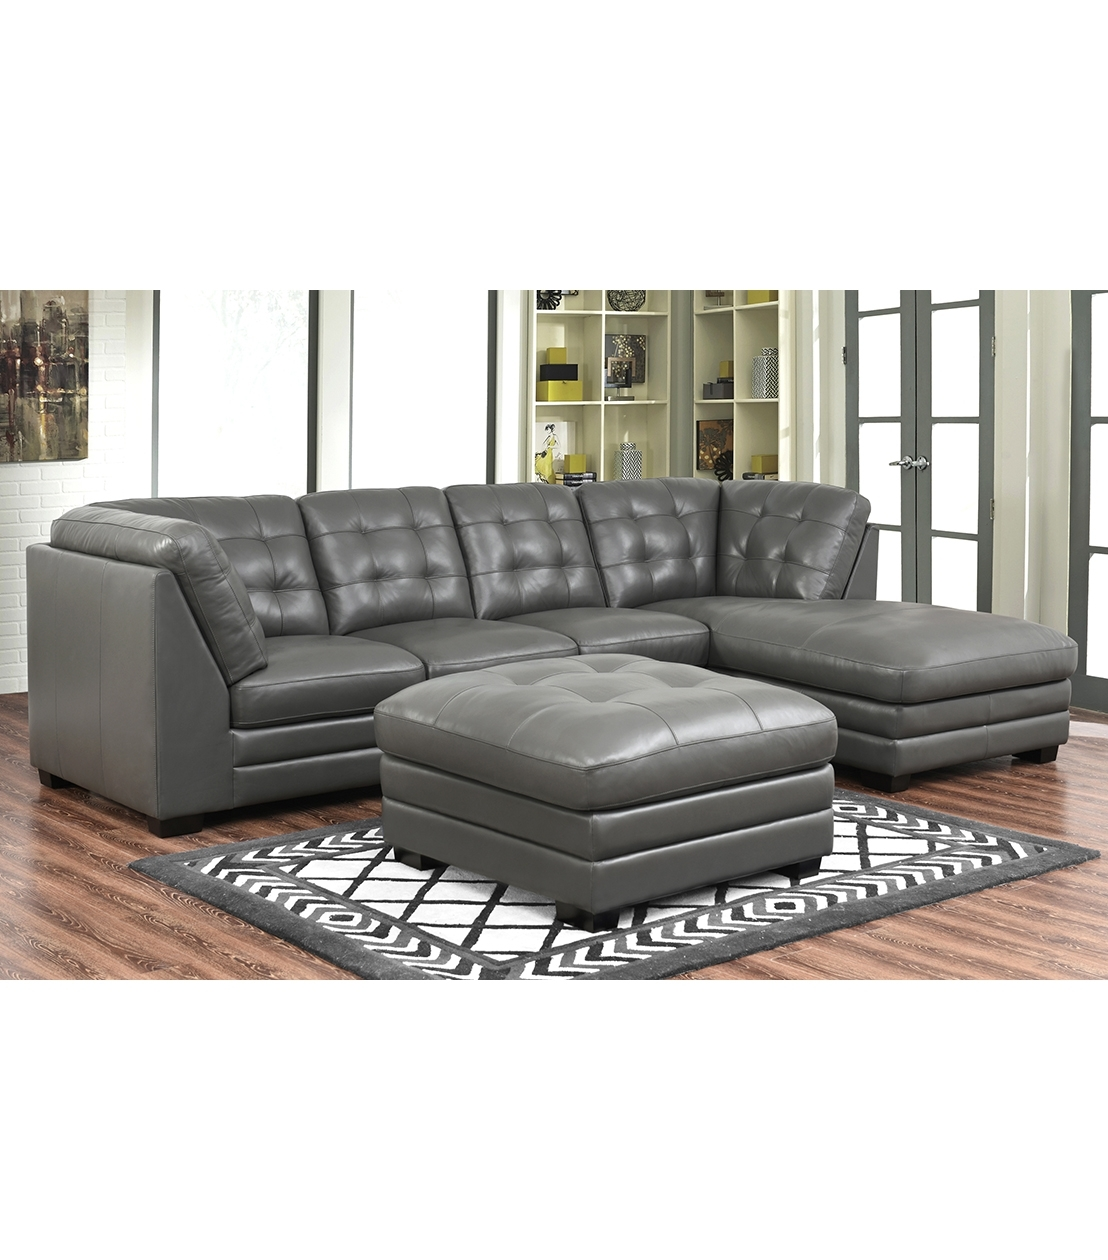 Sectionals : Lawrence Top Grain Leather Sectional With Ottoman With Leather Sectionals With Ottoman (View 10 of 10)